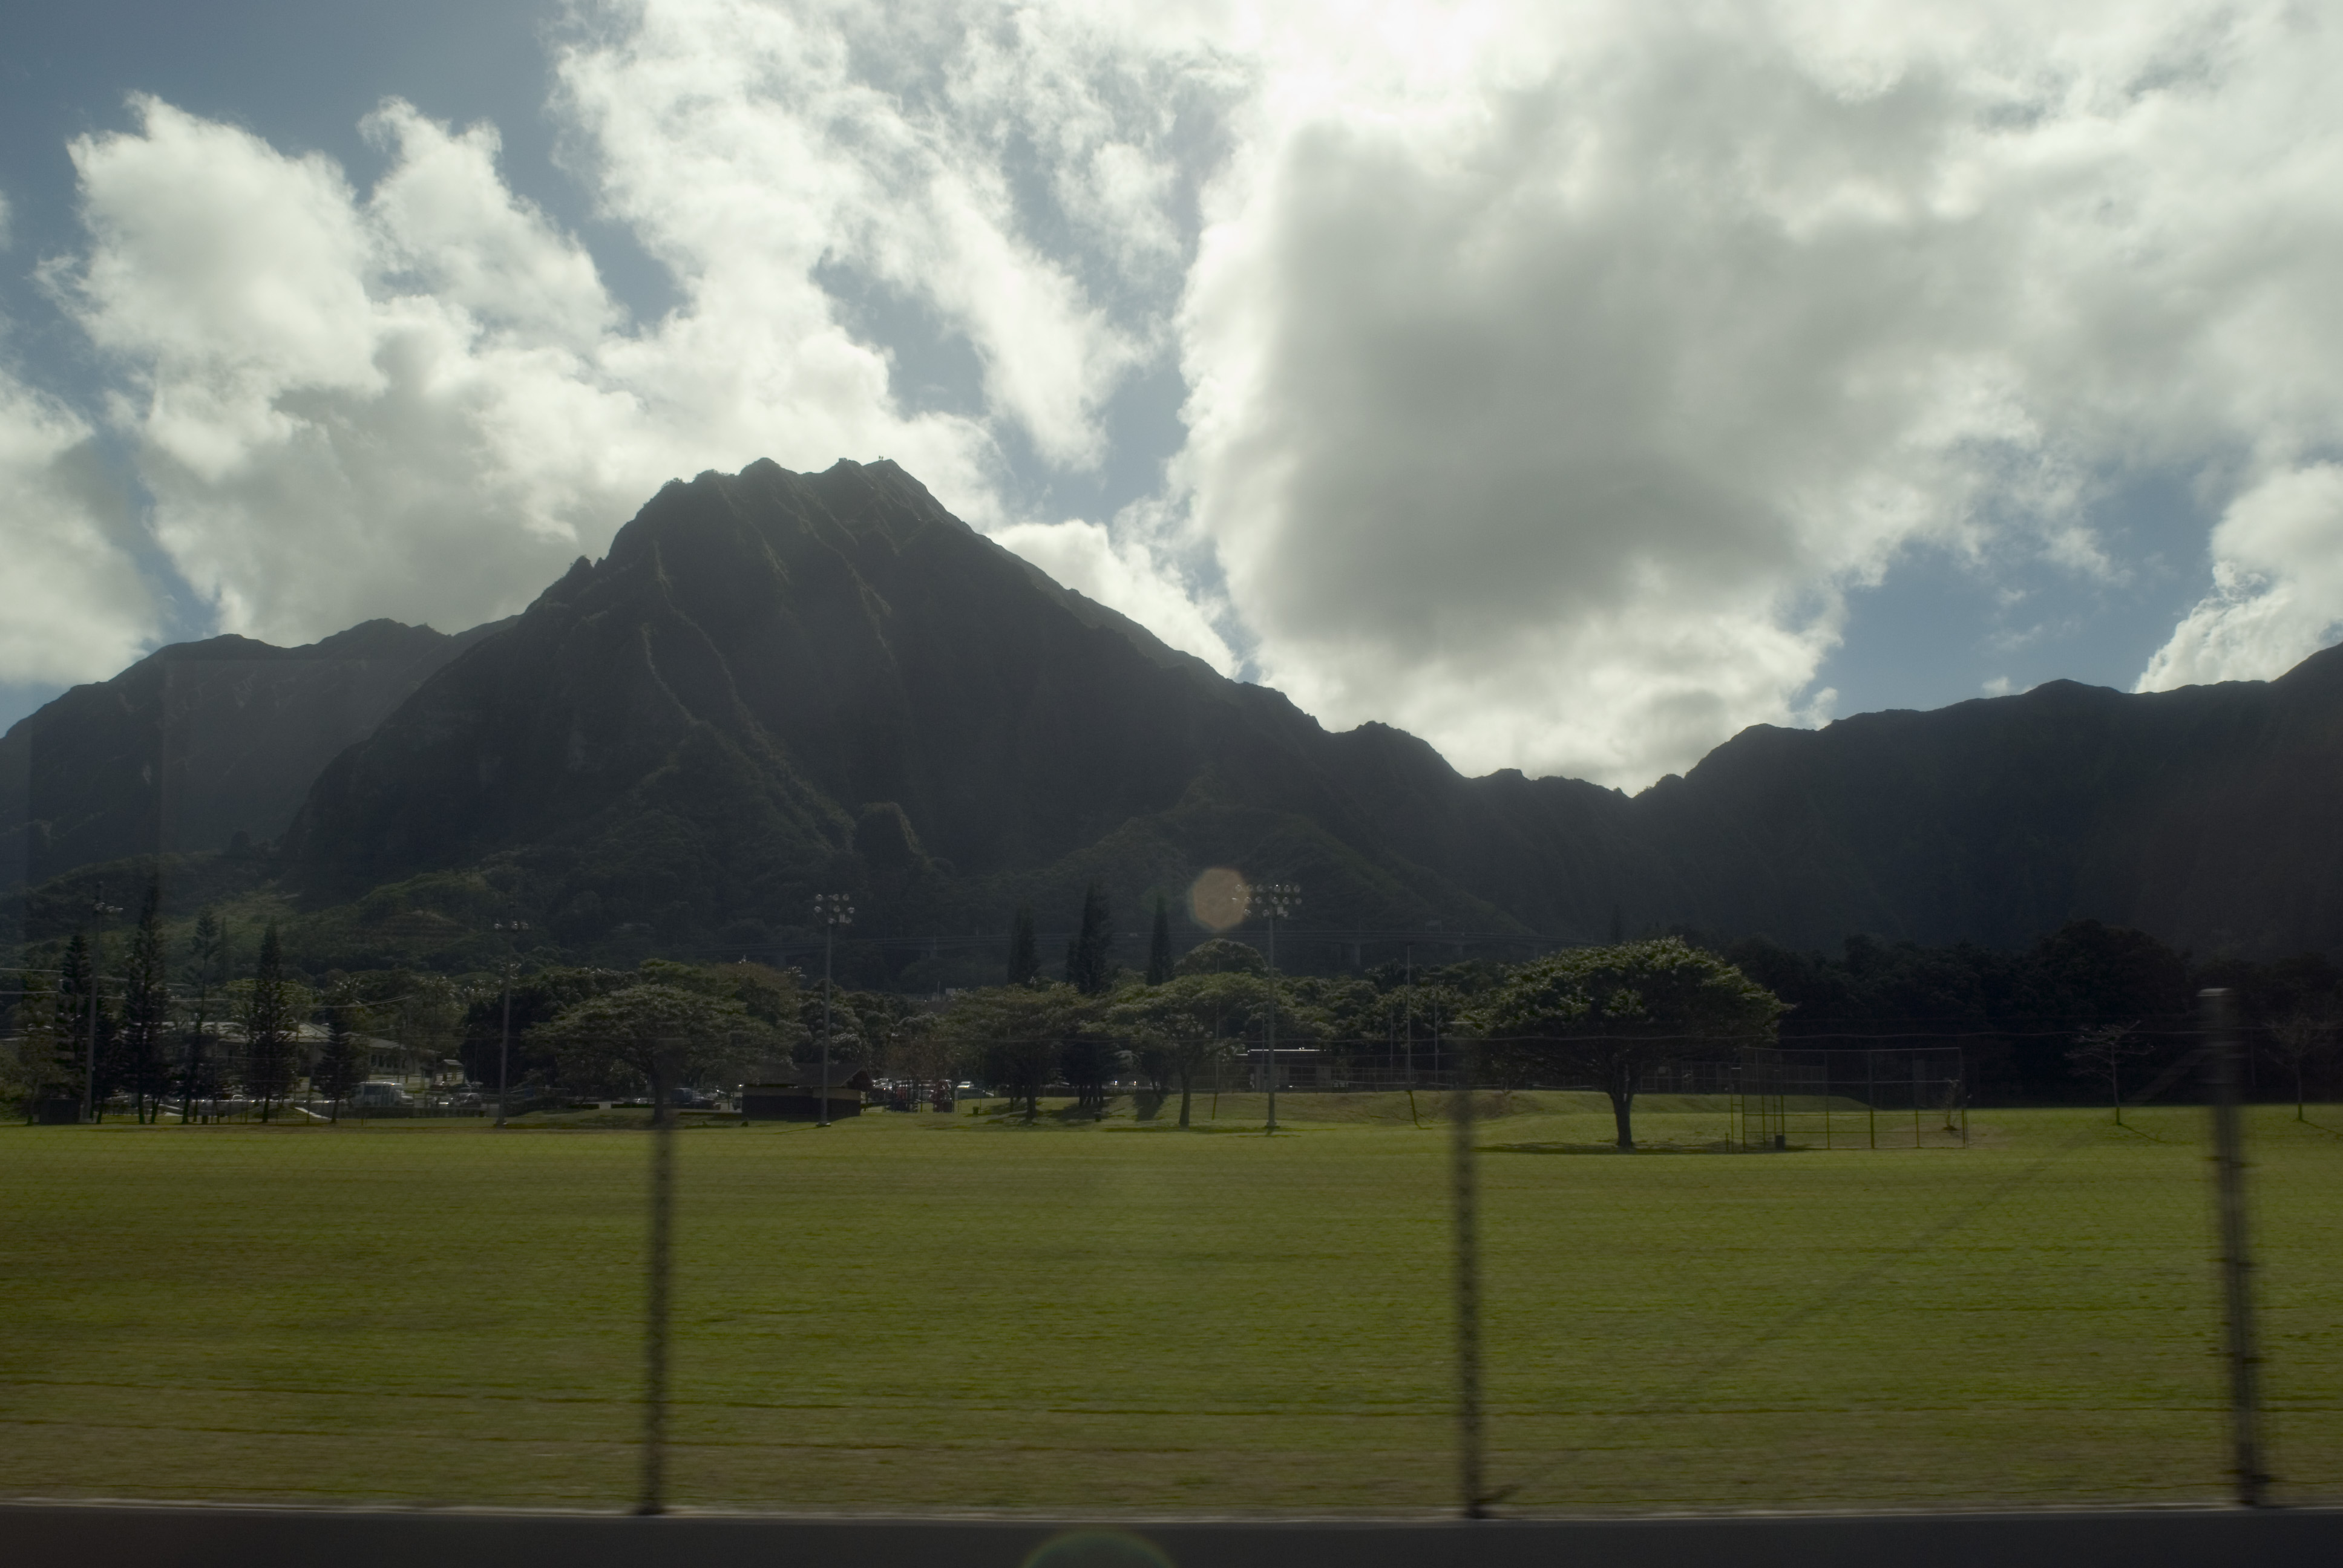 grungy through glass image with lens flare - hawaii mountains